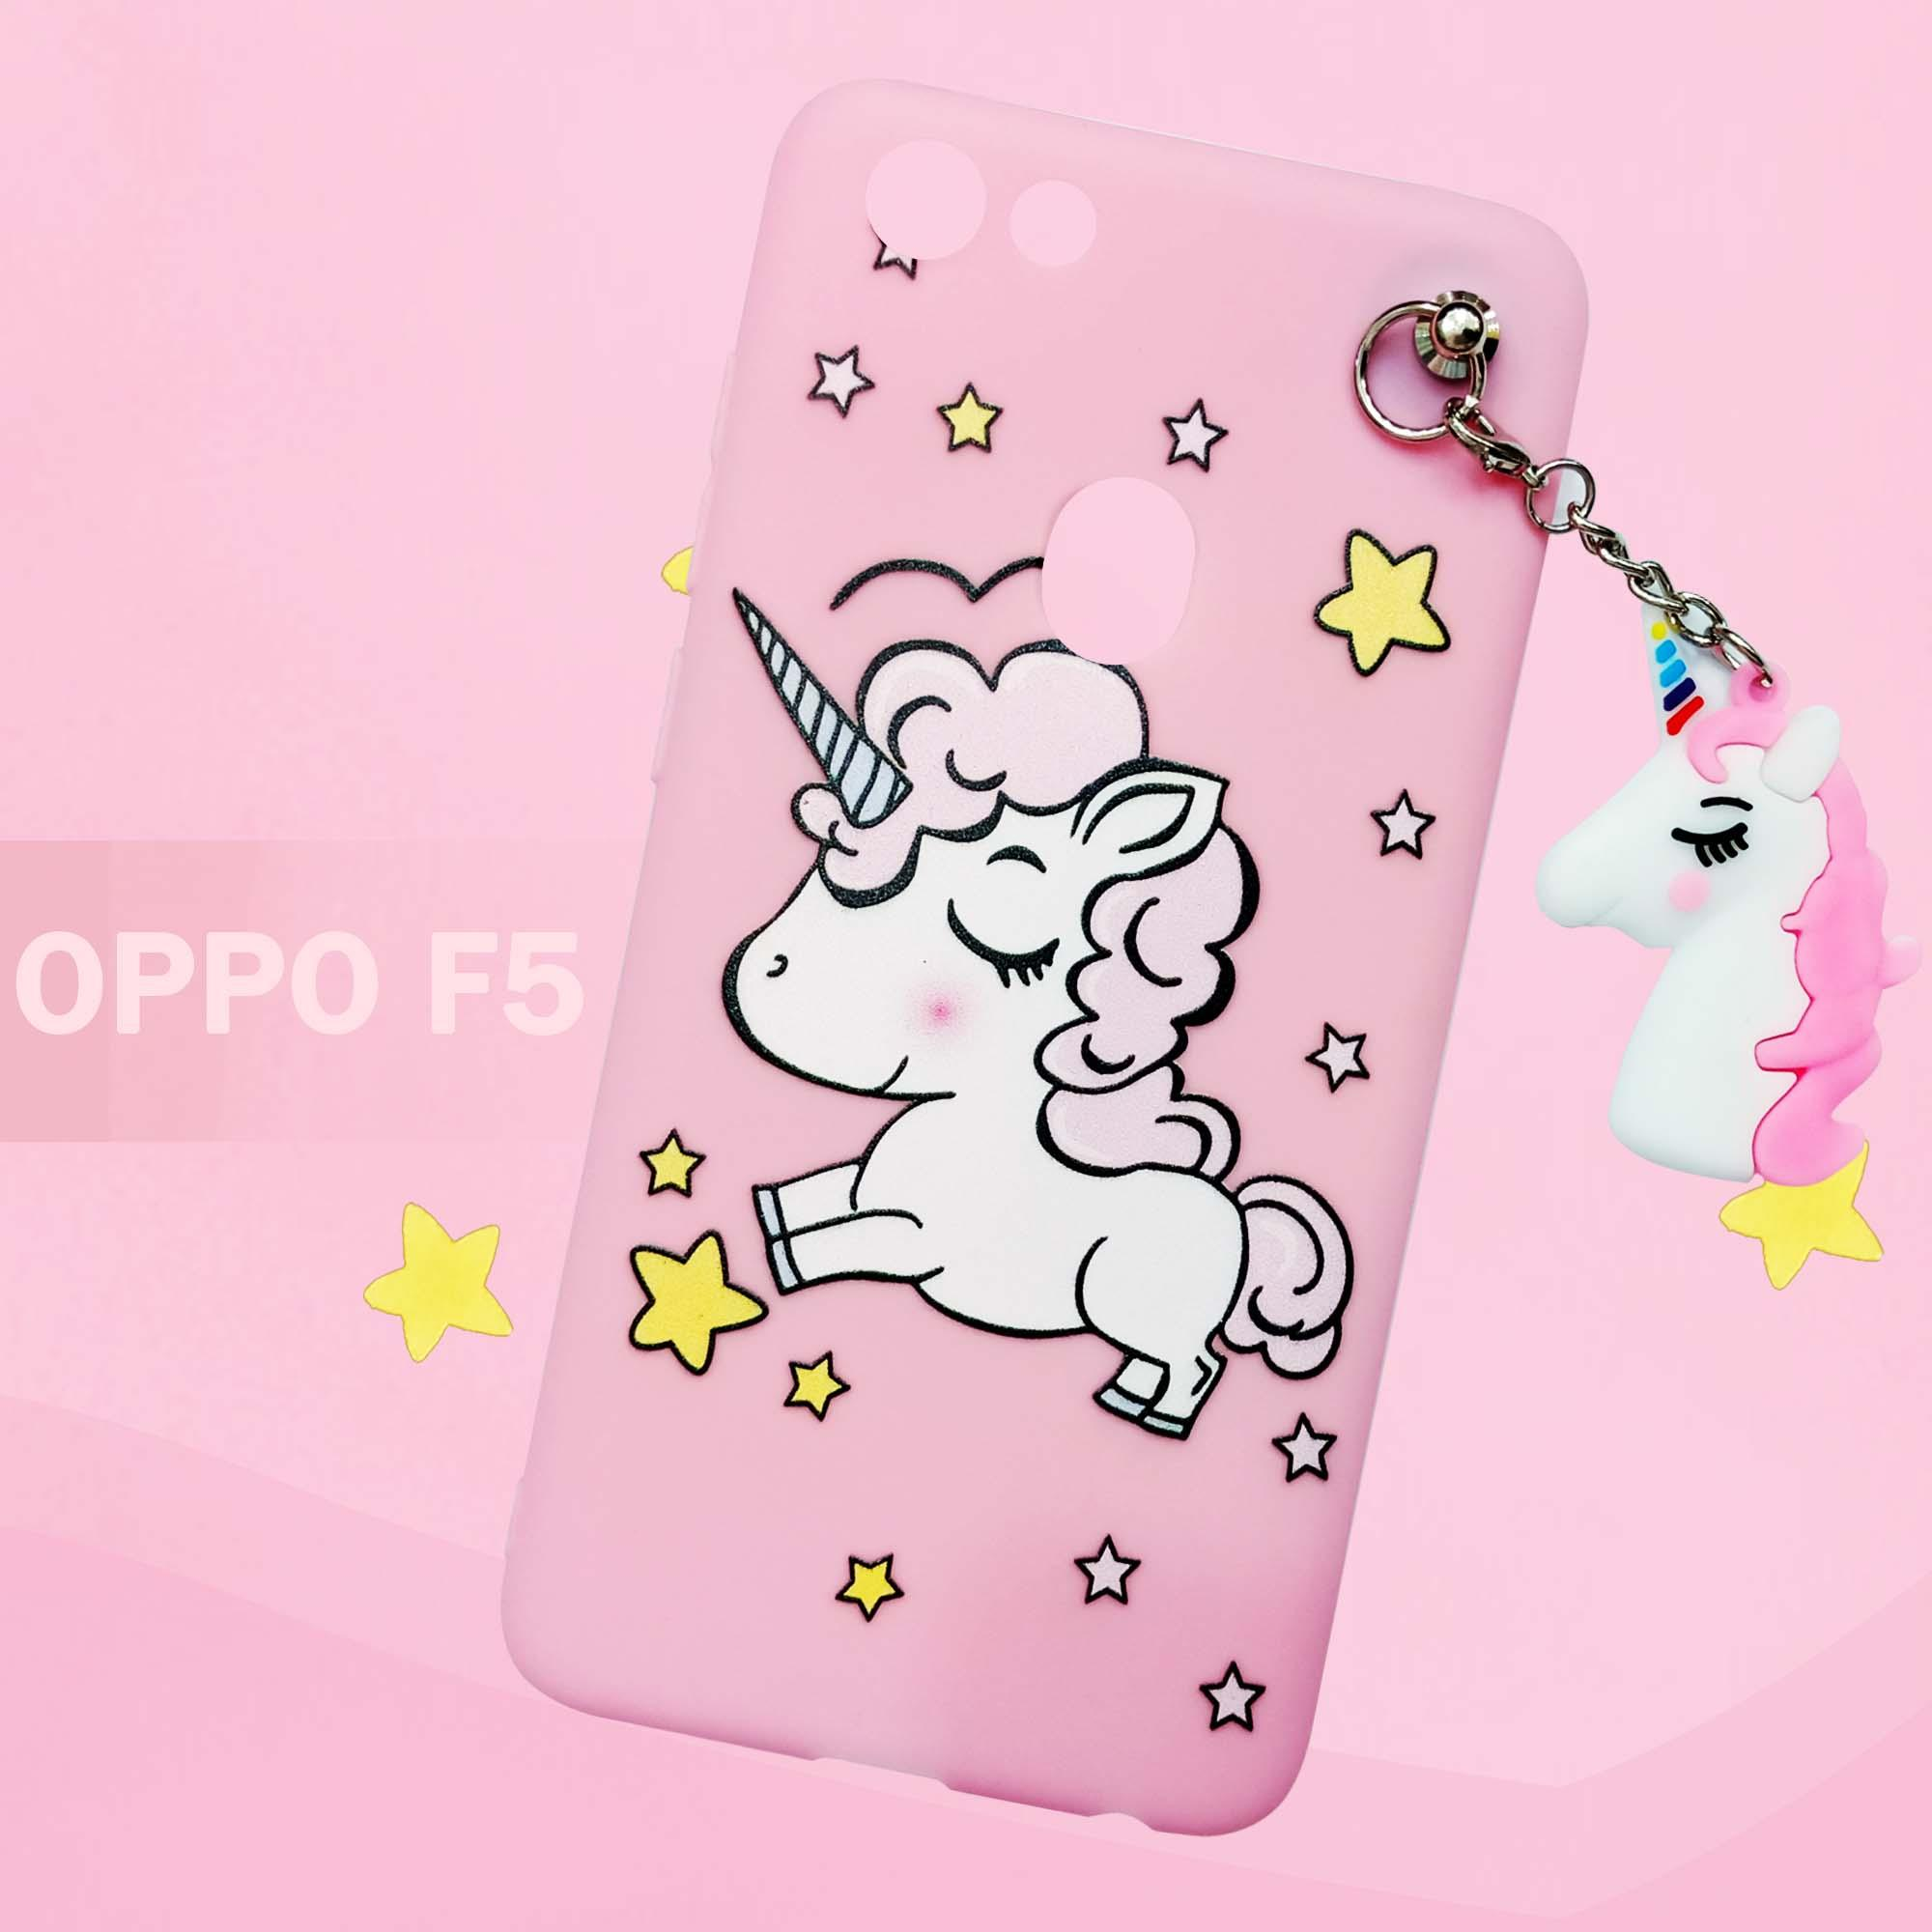 Kehebatan Case Oppo F5 New Unicorn Fashion Gantel Dan Harga Update Desember 2018